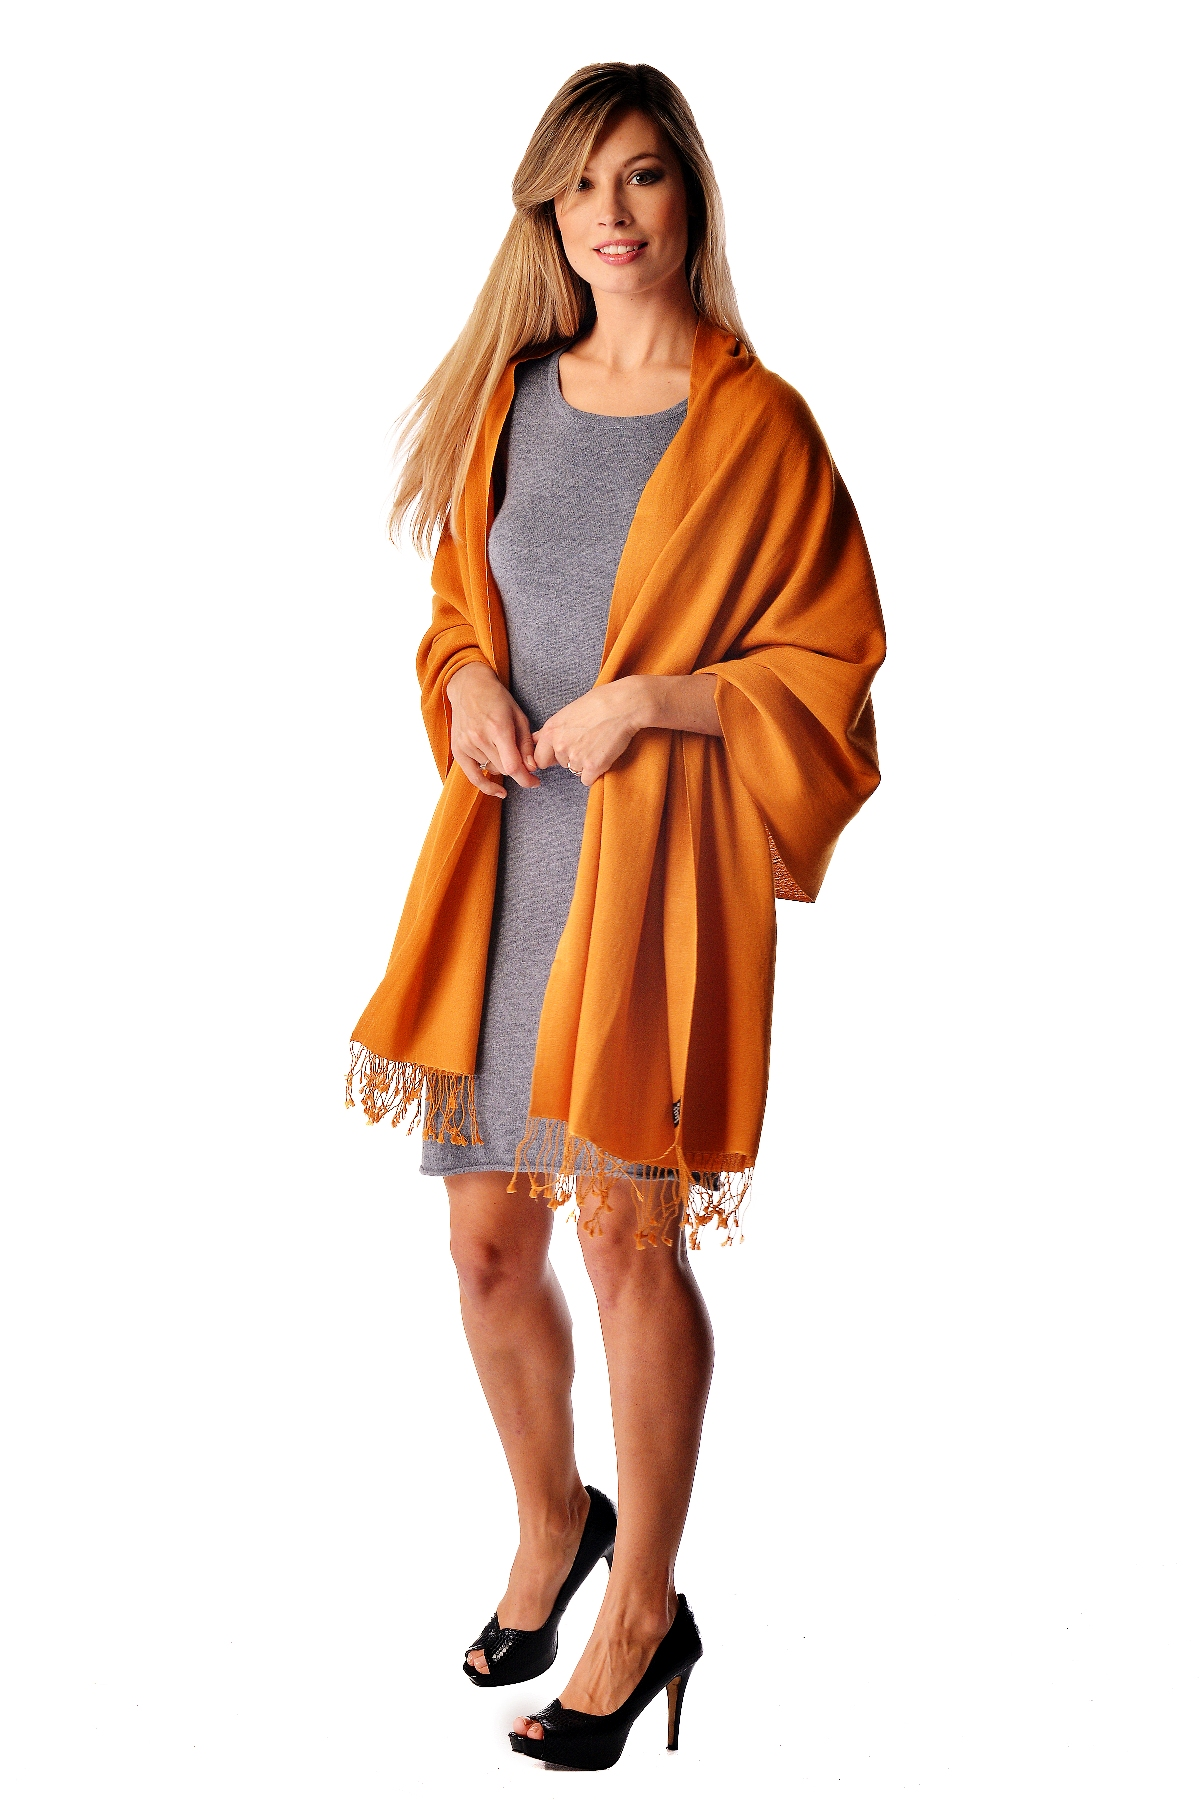 We offer the finest quality pashminas that are Made in Nepal. These wraps measure 28 inches x 80 inches  and are made with a blend of 70 cashmere and 30 silk. They come with 3 inch tassels at both ends. These pashminas are light  yet incredibly warm. Their innate versatility and  style  allows the wearer to use them as a scarf with a winter coat  an accessory  over a sweater or suit  a luxurious stole for formalwear  or just as the classic  pashmina wrap.